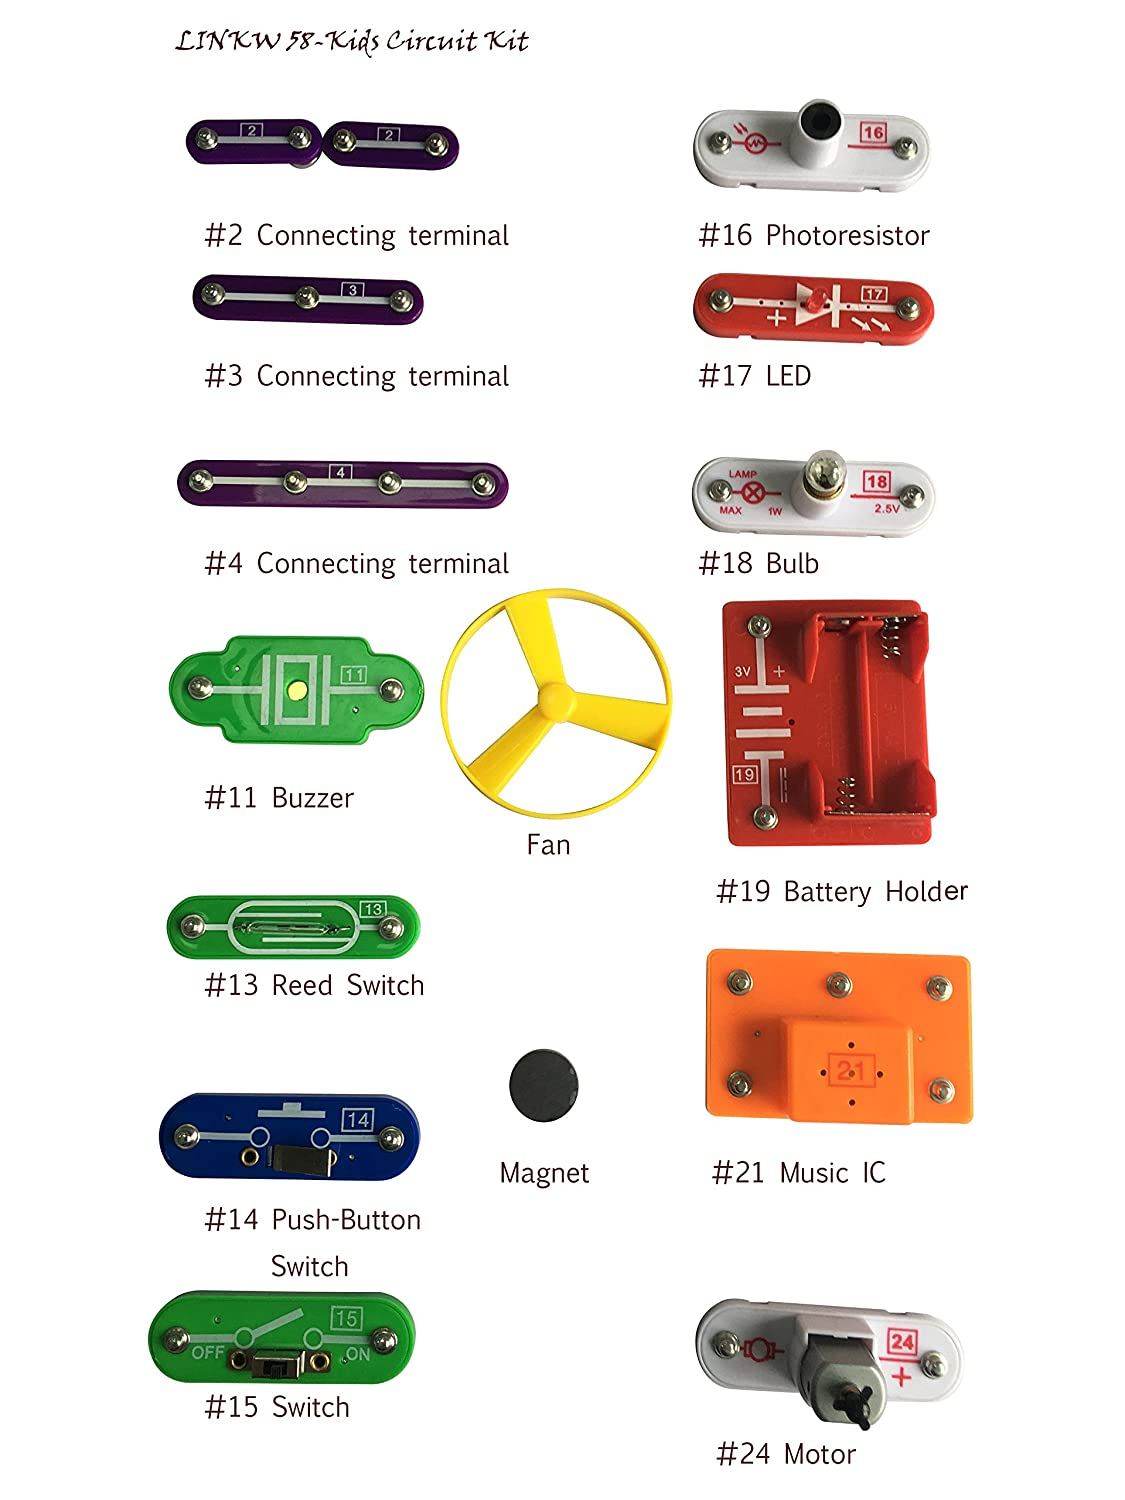 Ezlink 58 Diy Circuit Experimentsscience Kitselectronic Discovery More Doorbell Circuits Pushbutton Switches Hobby Category Kit Toy For Kidskids Circuitskids Kitscience Experiments Kidsexperiments